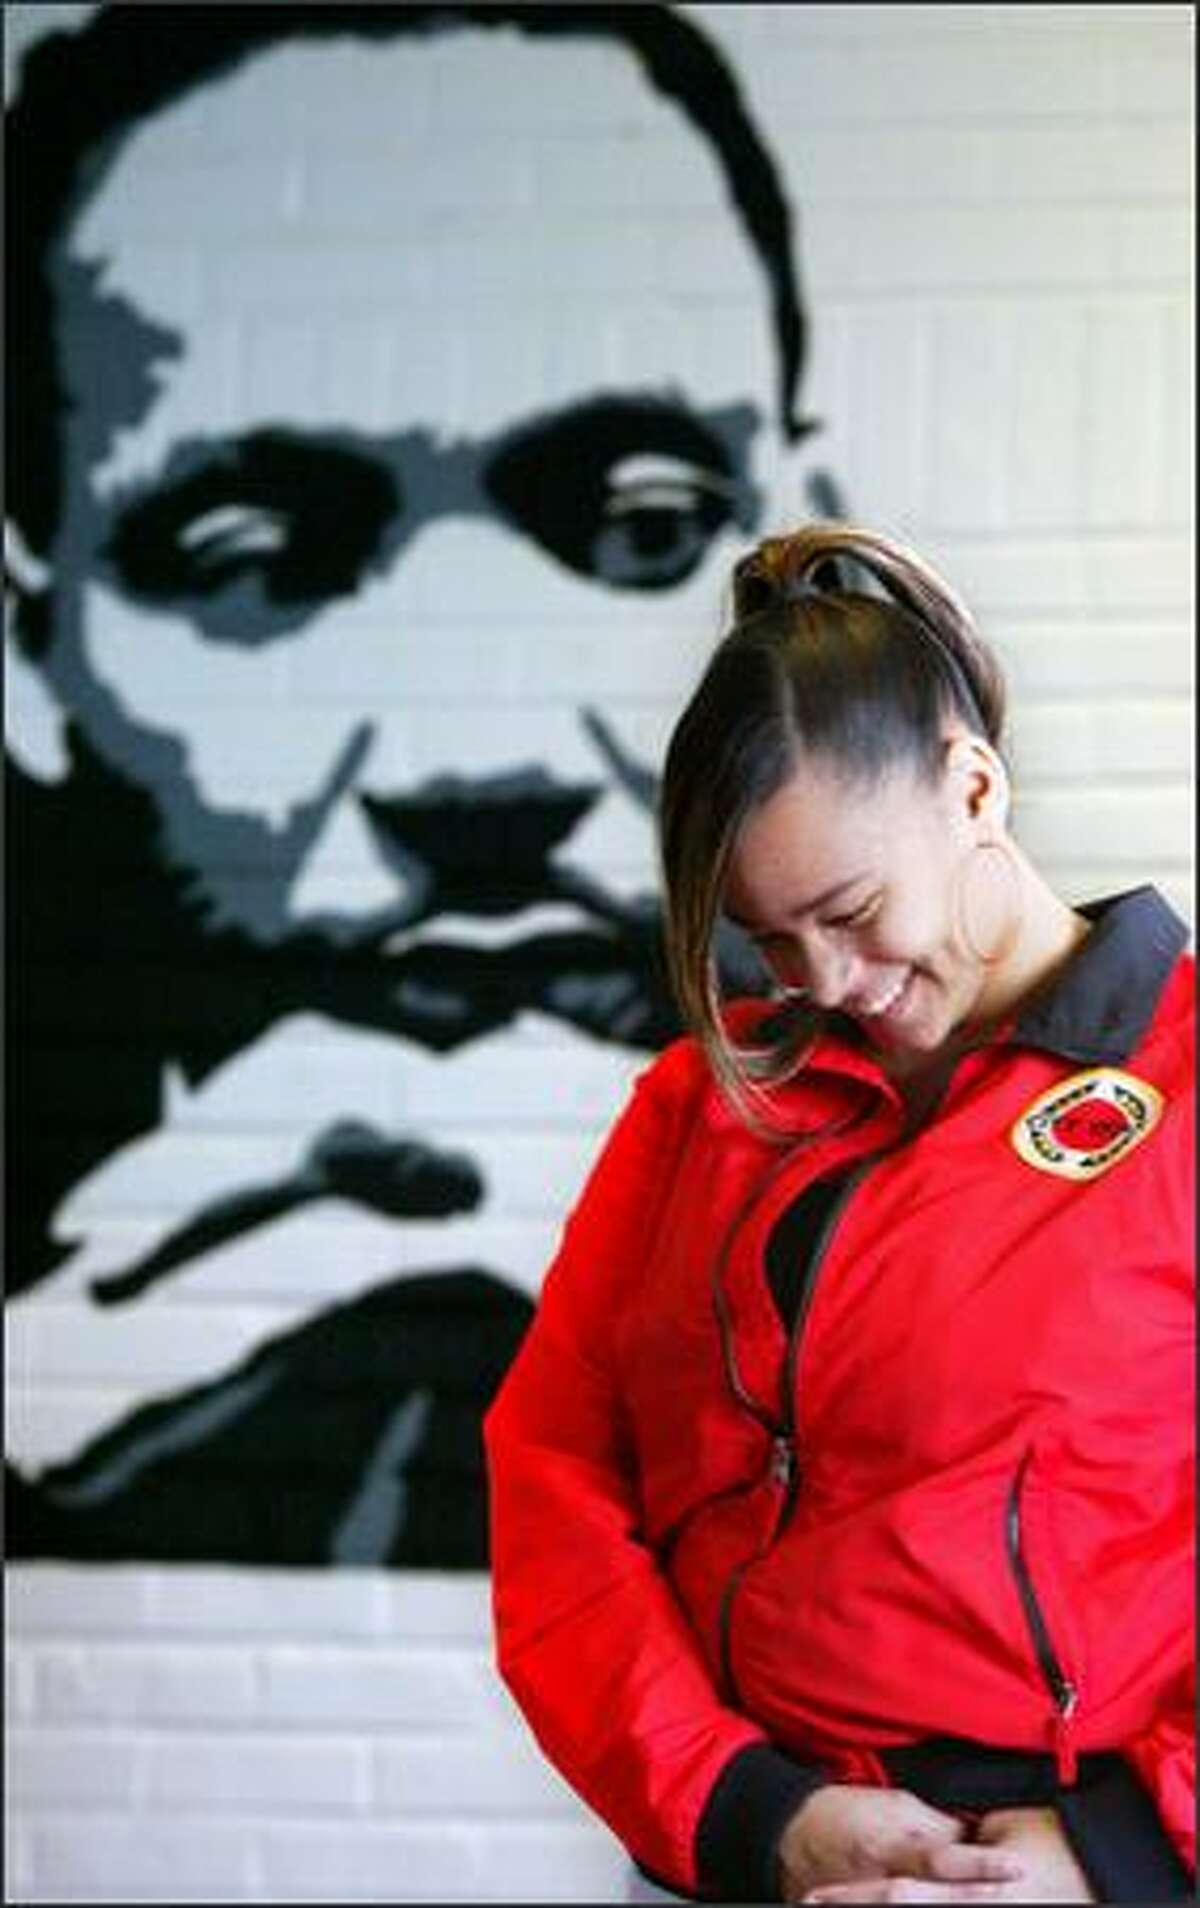 Leasha Donald-McNary, 15, a Center High sophomore, spent the past week teaching children about the civil rights movement. The mural behind her was painted by a member of City Year last summer at Meany Middle School.